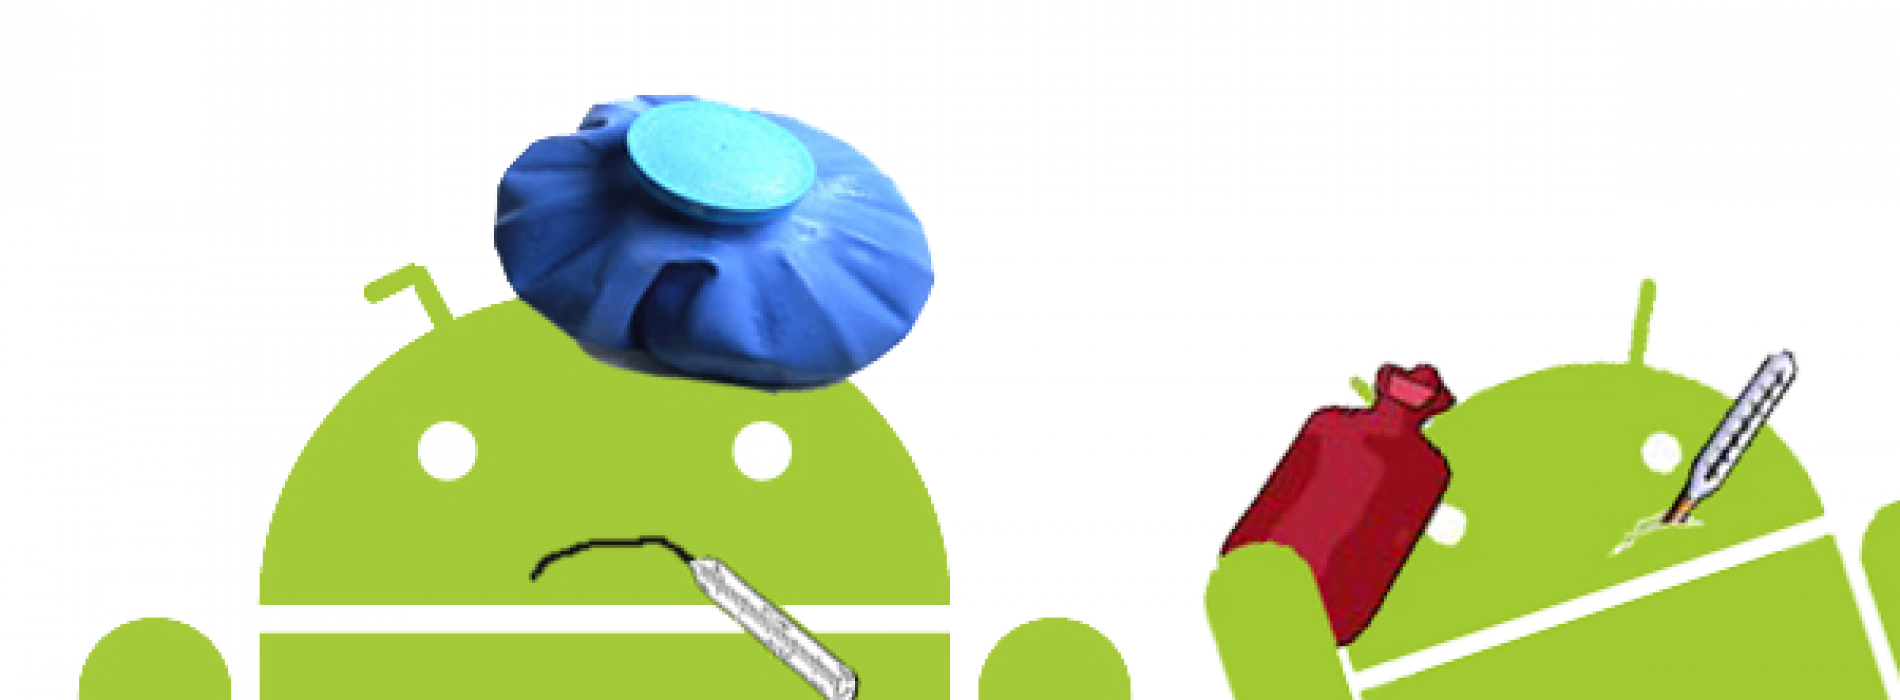 Mutating Trojans could pose a threat to Android users